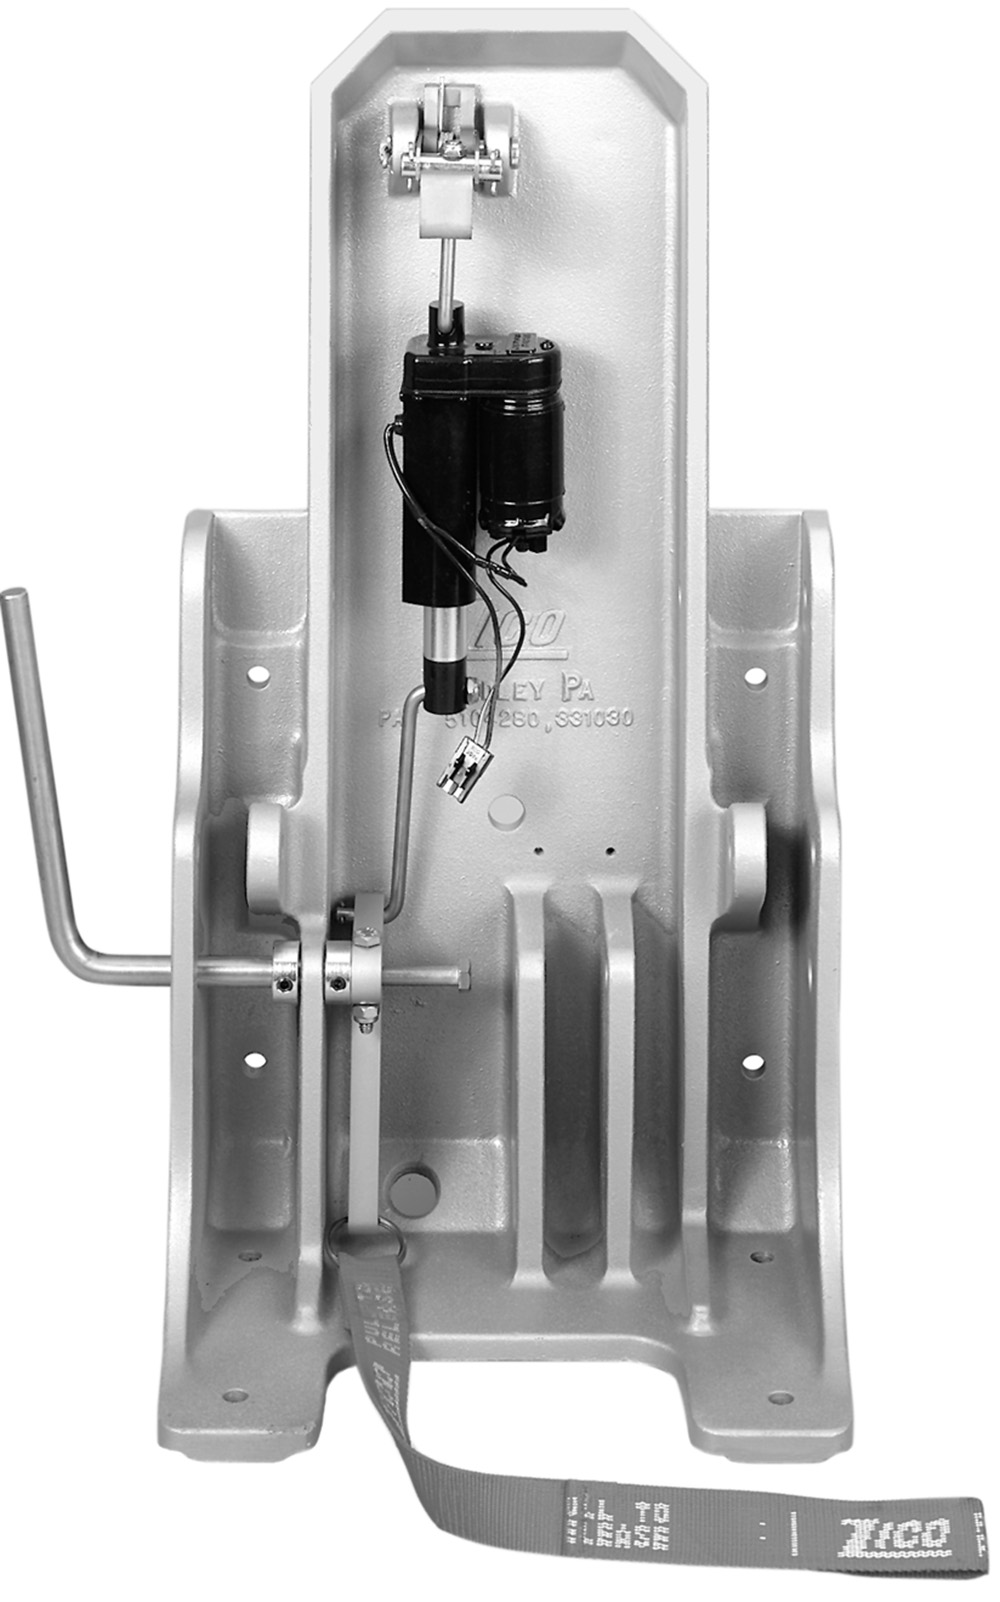 Electric Locking System for LAS/HSS